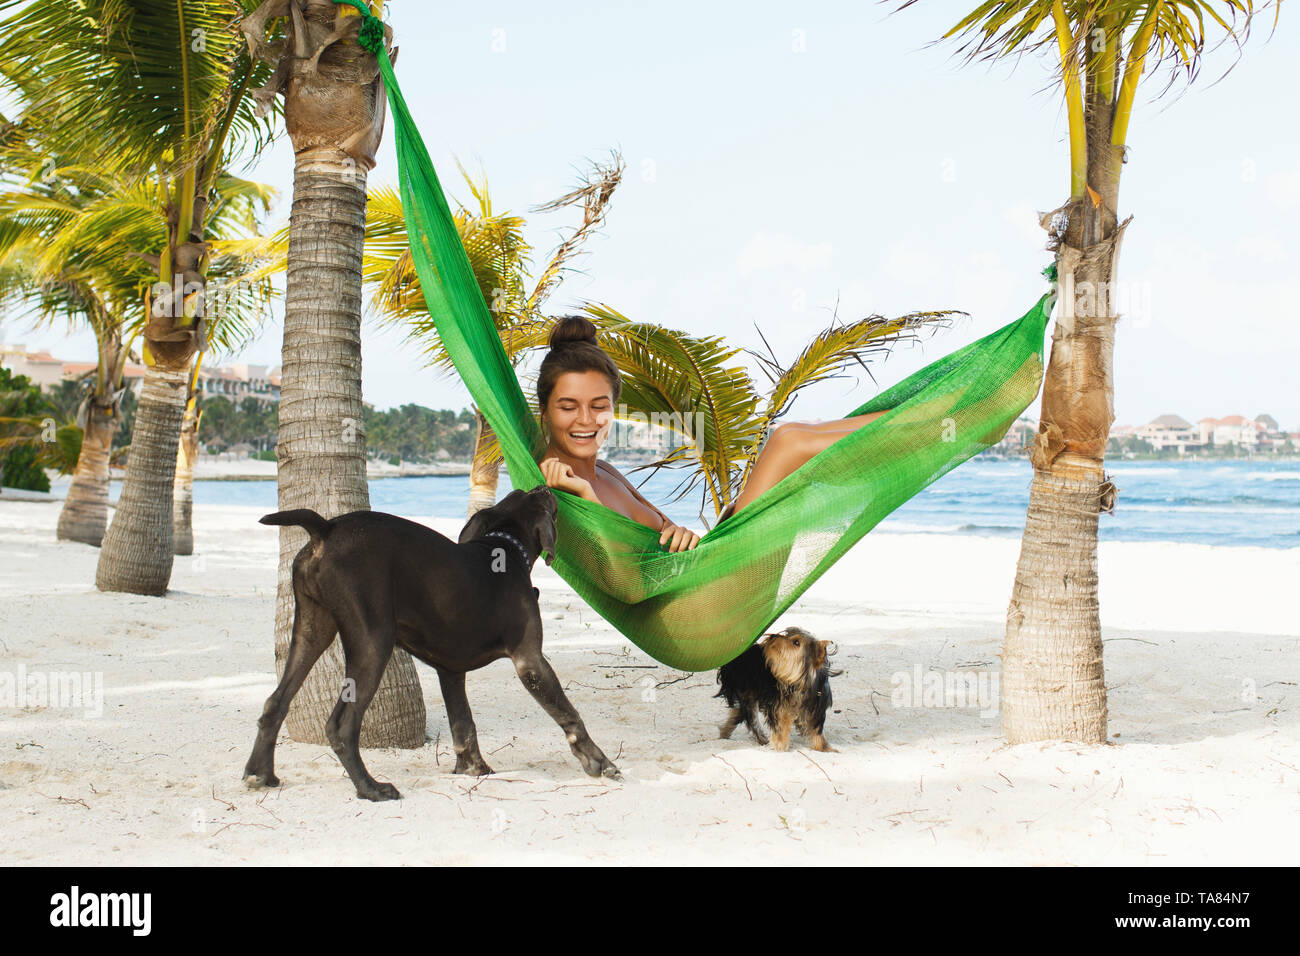 Happy woman is lying in the hammock on the beach with dogs - Stock Image